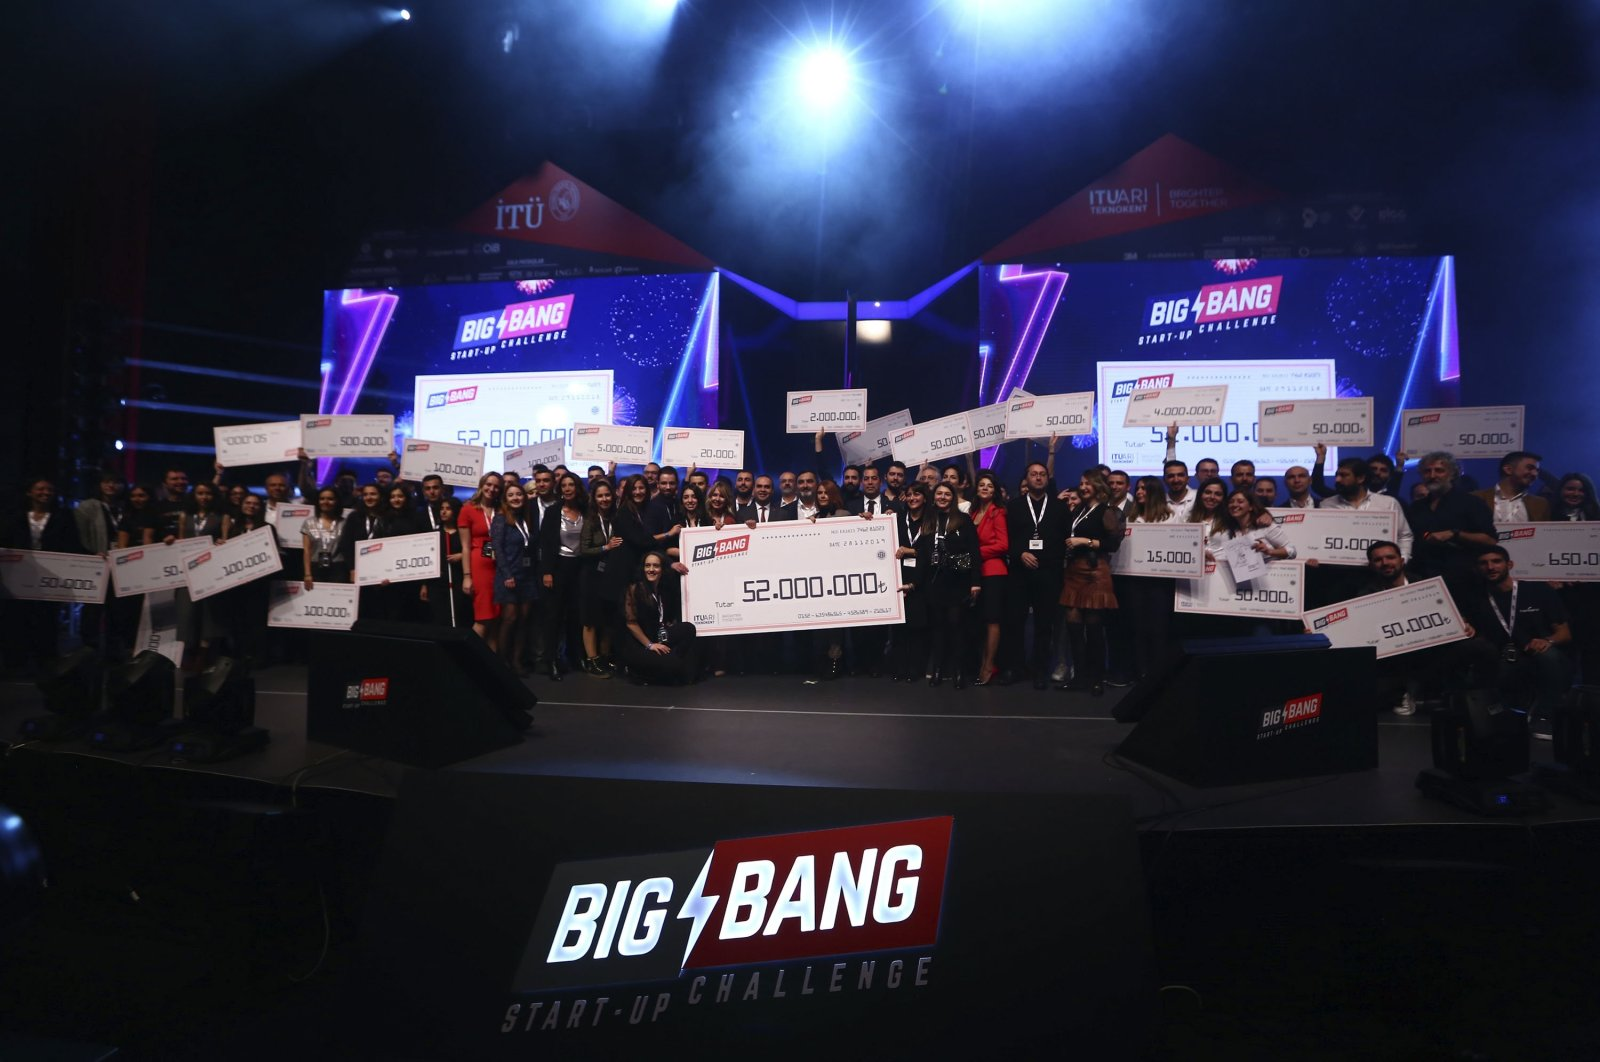 Finalists of the Big Bang Start-up Challenge are seen on the stage at ITÜ ARI Teknokent, Istanbul, Turkey, Nov. 29, 2019. (Sabah File Photo)